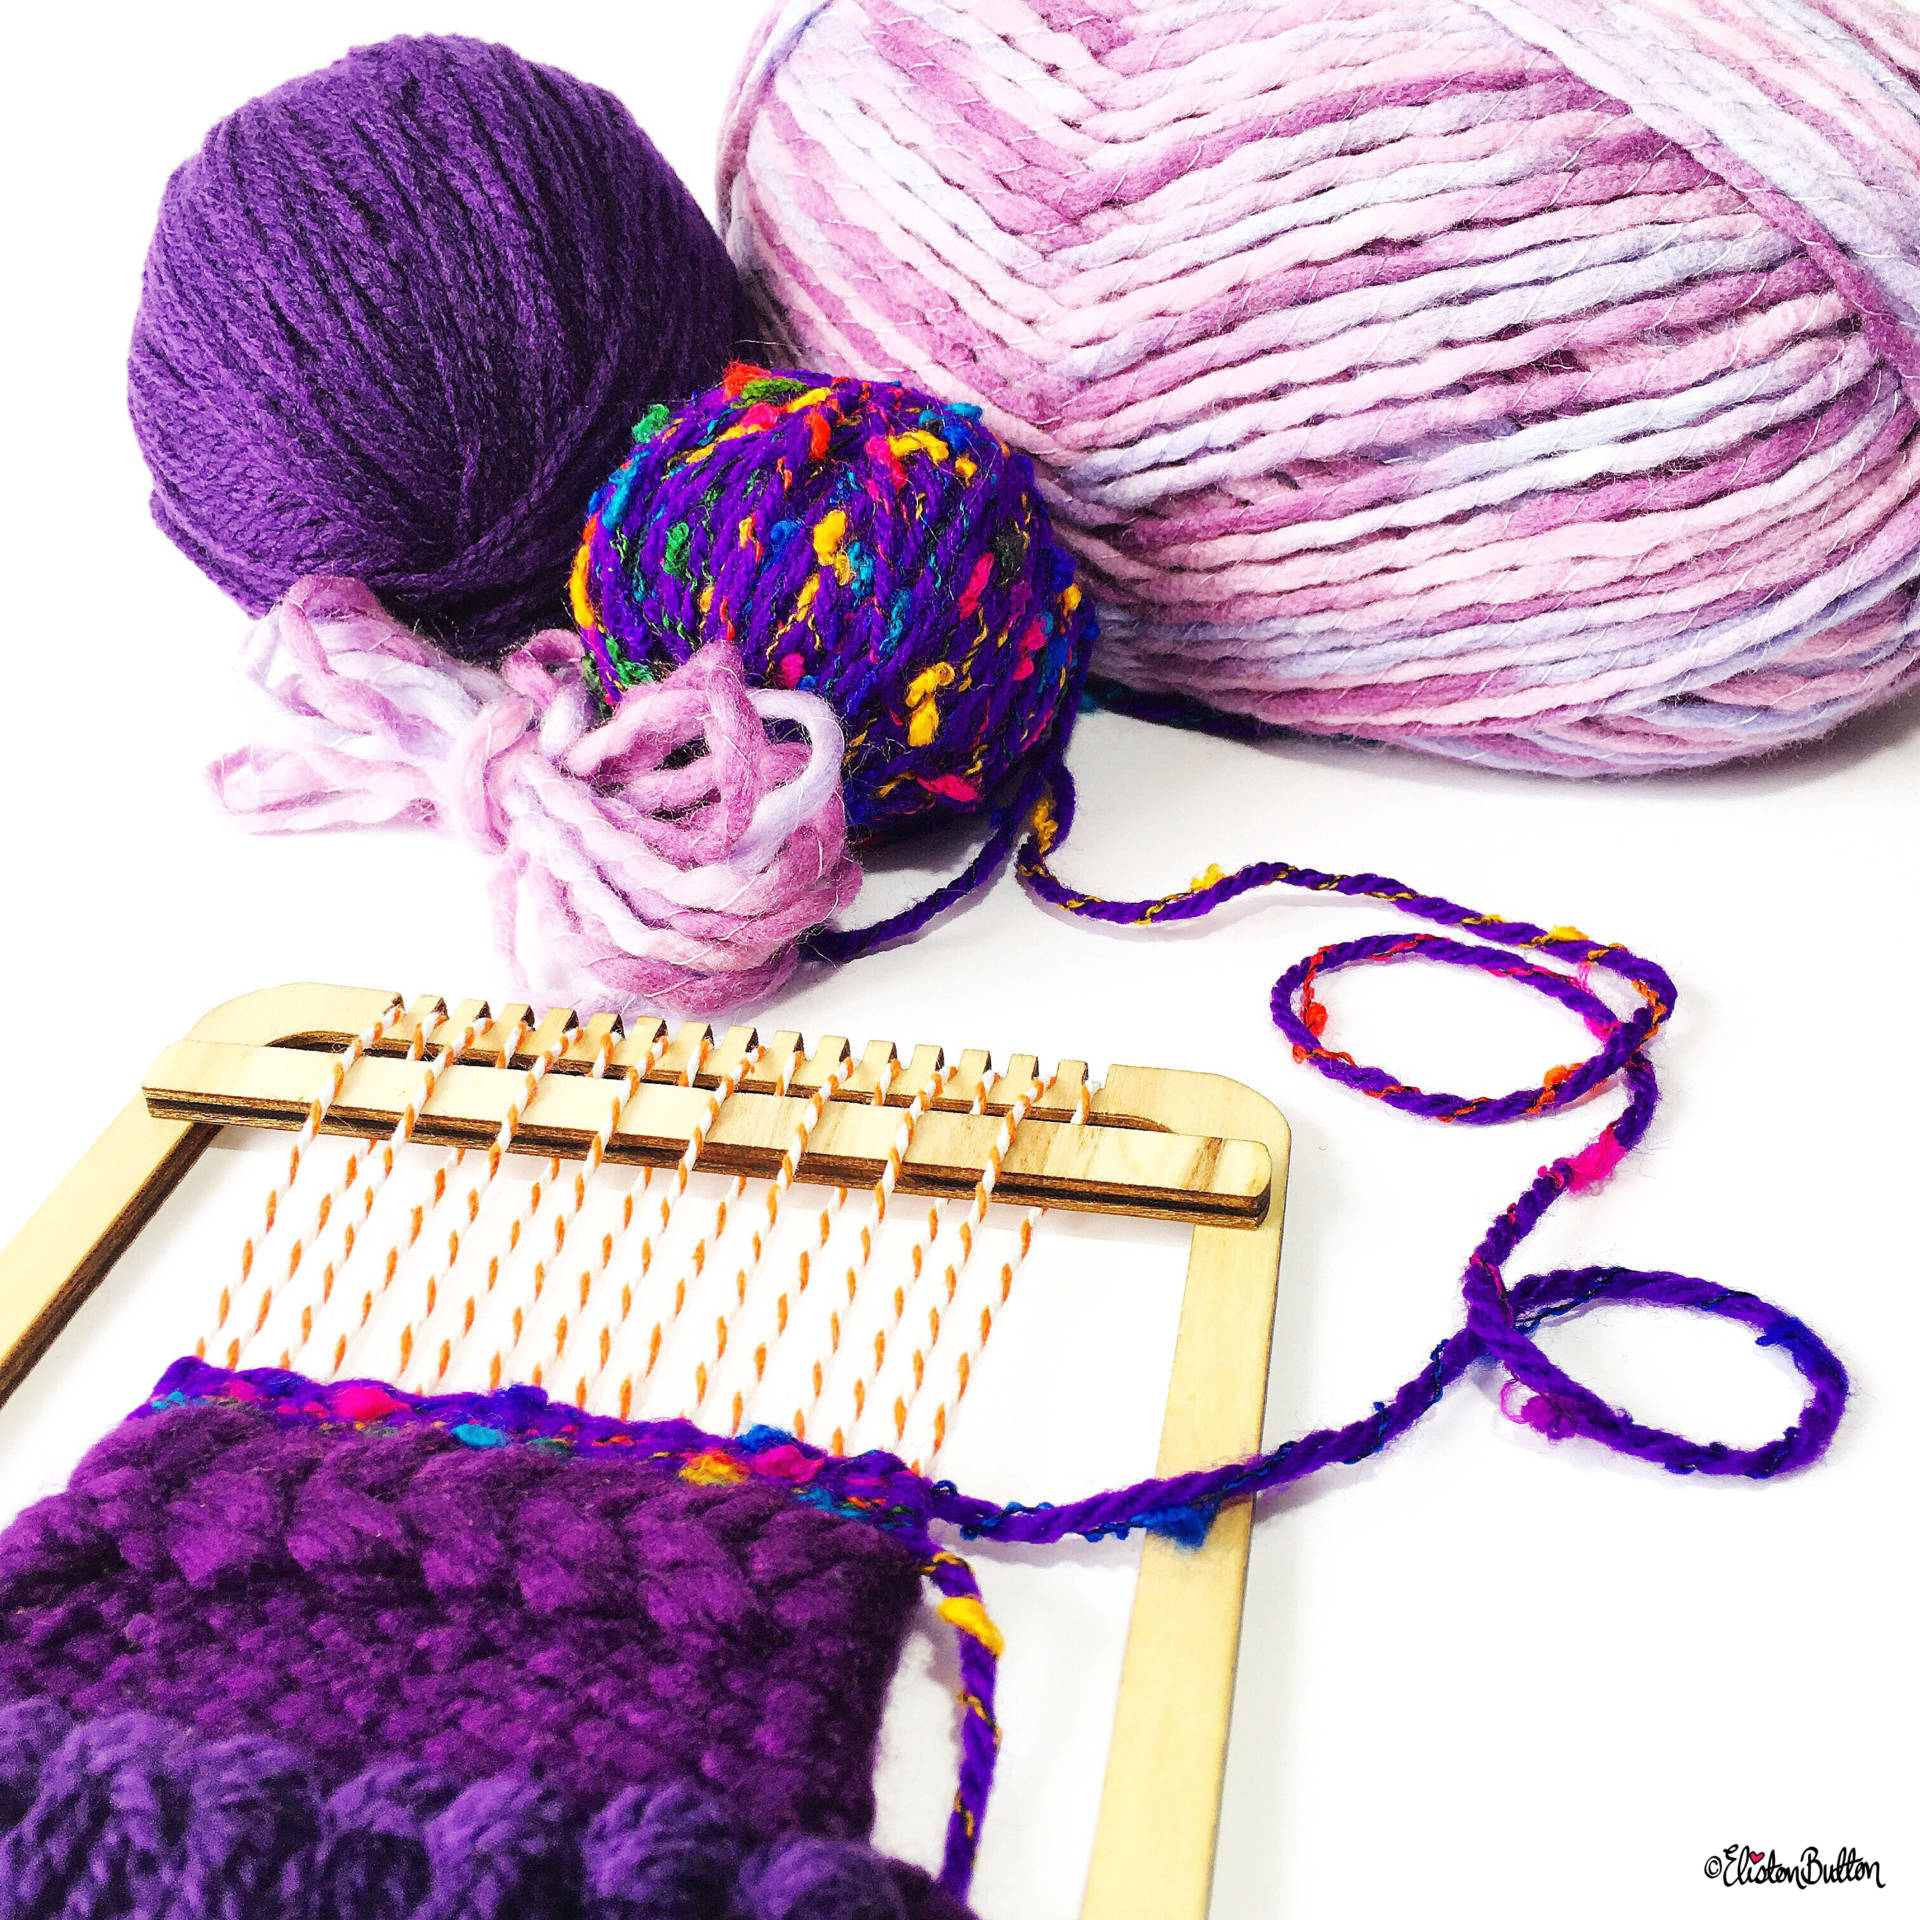 Day 12 - L is For...Loom - Purple shades of Woven Yarn on a Mini Loom - Photo-a-Day - July 2016 - Eliston Button A-Z of Craft at www.elistonbutton.com - Eliston Button - That Crafty Kid – Art, Design, Craft & Adventure.